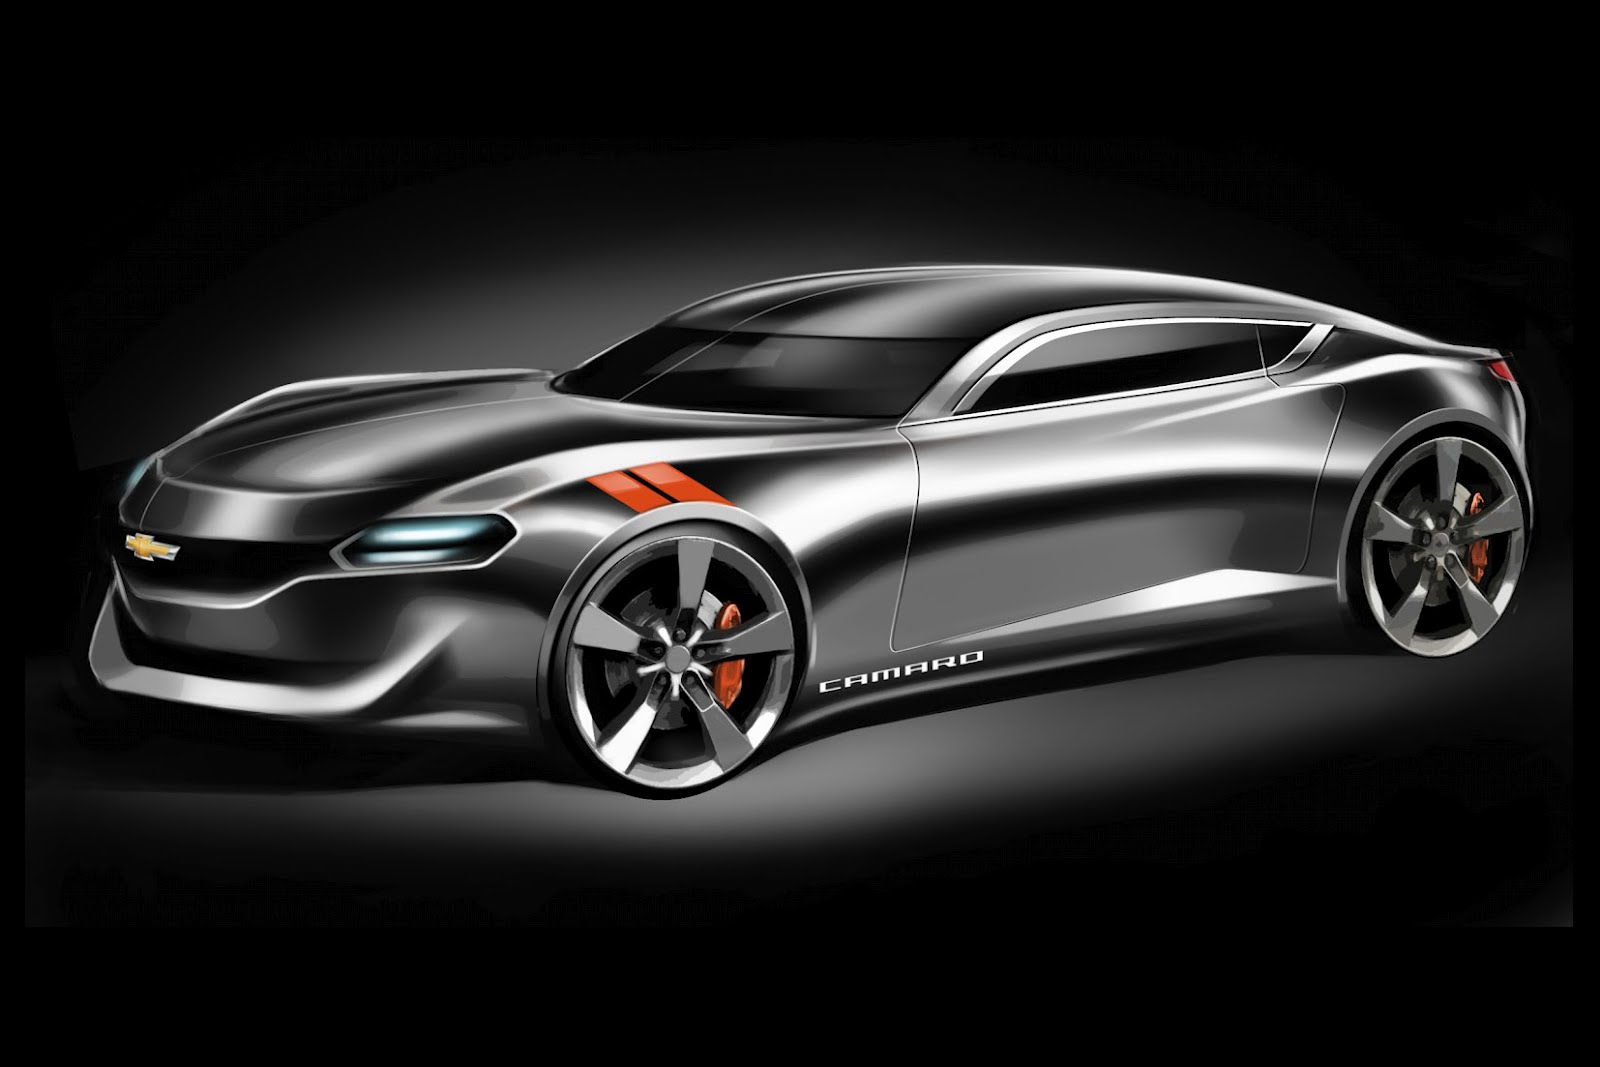 Chevy Concept Cars 2015 2015 Chevy Camaro Imagined Is